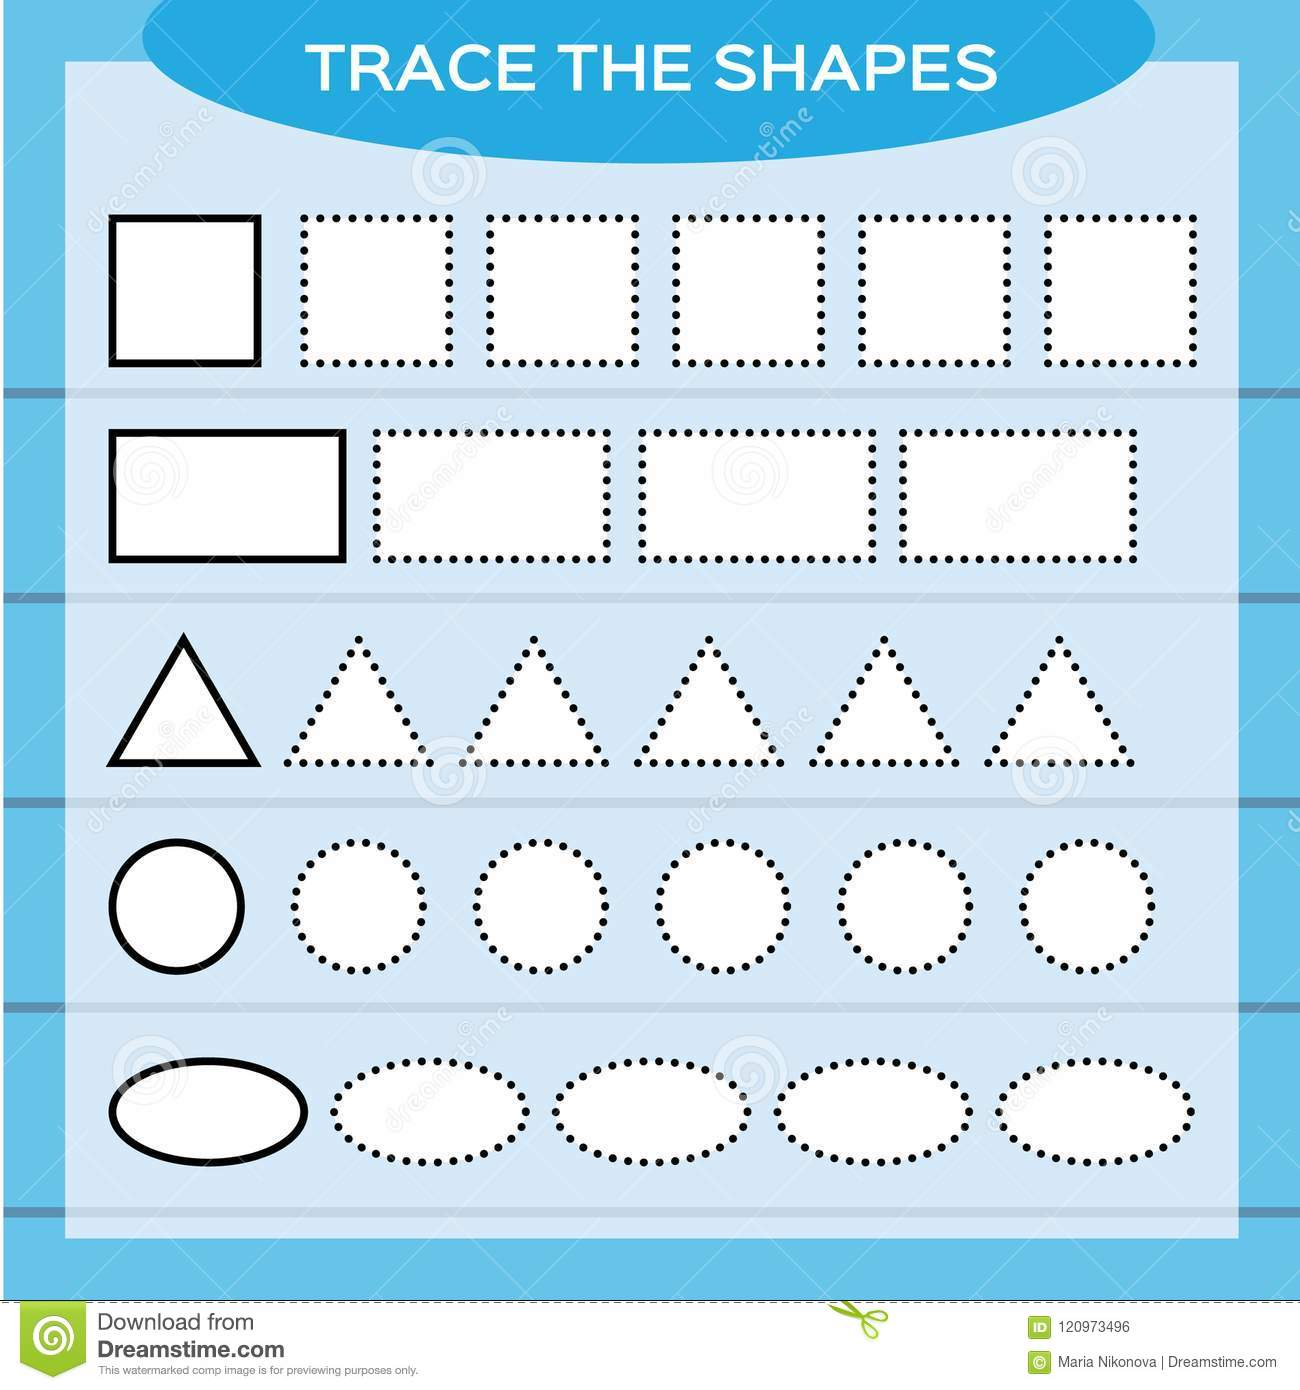 Trace The Shapes Kids Education Preschool Worksheet Basic Writing Kids Doing Worksheets